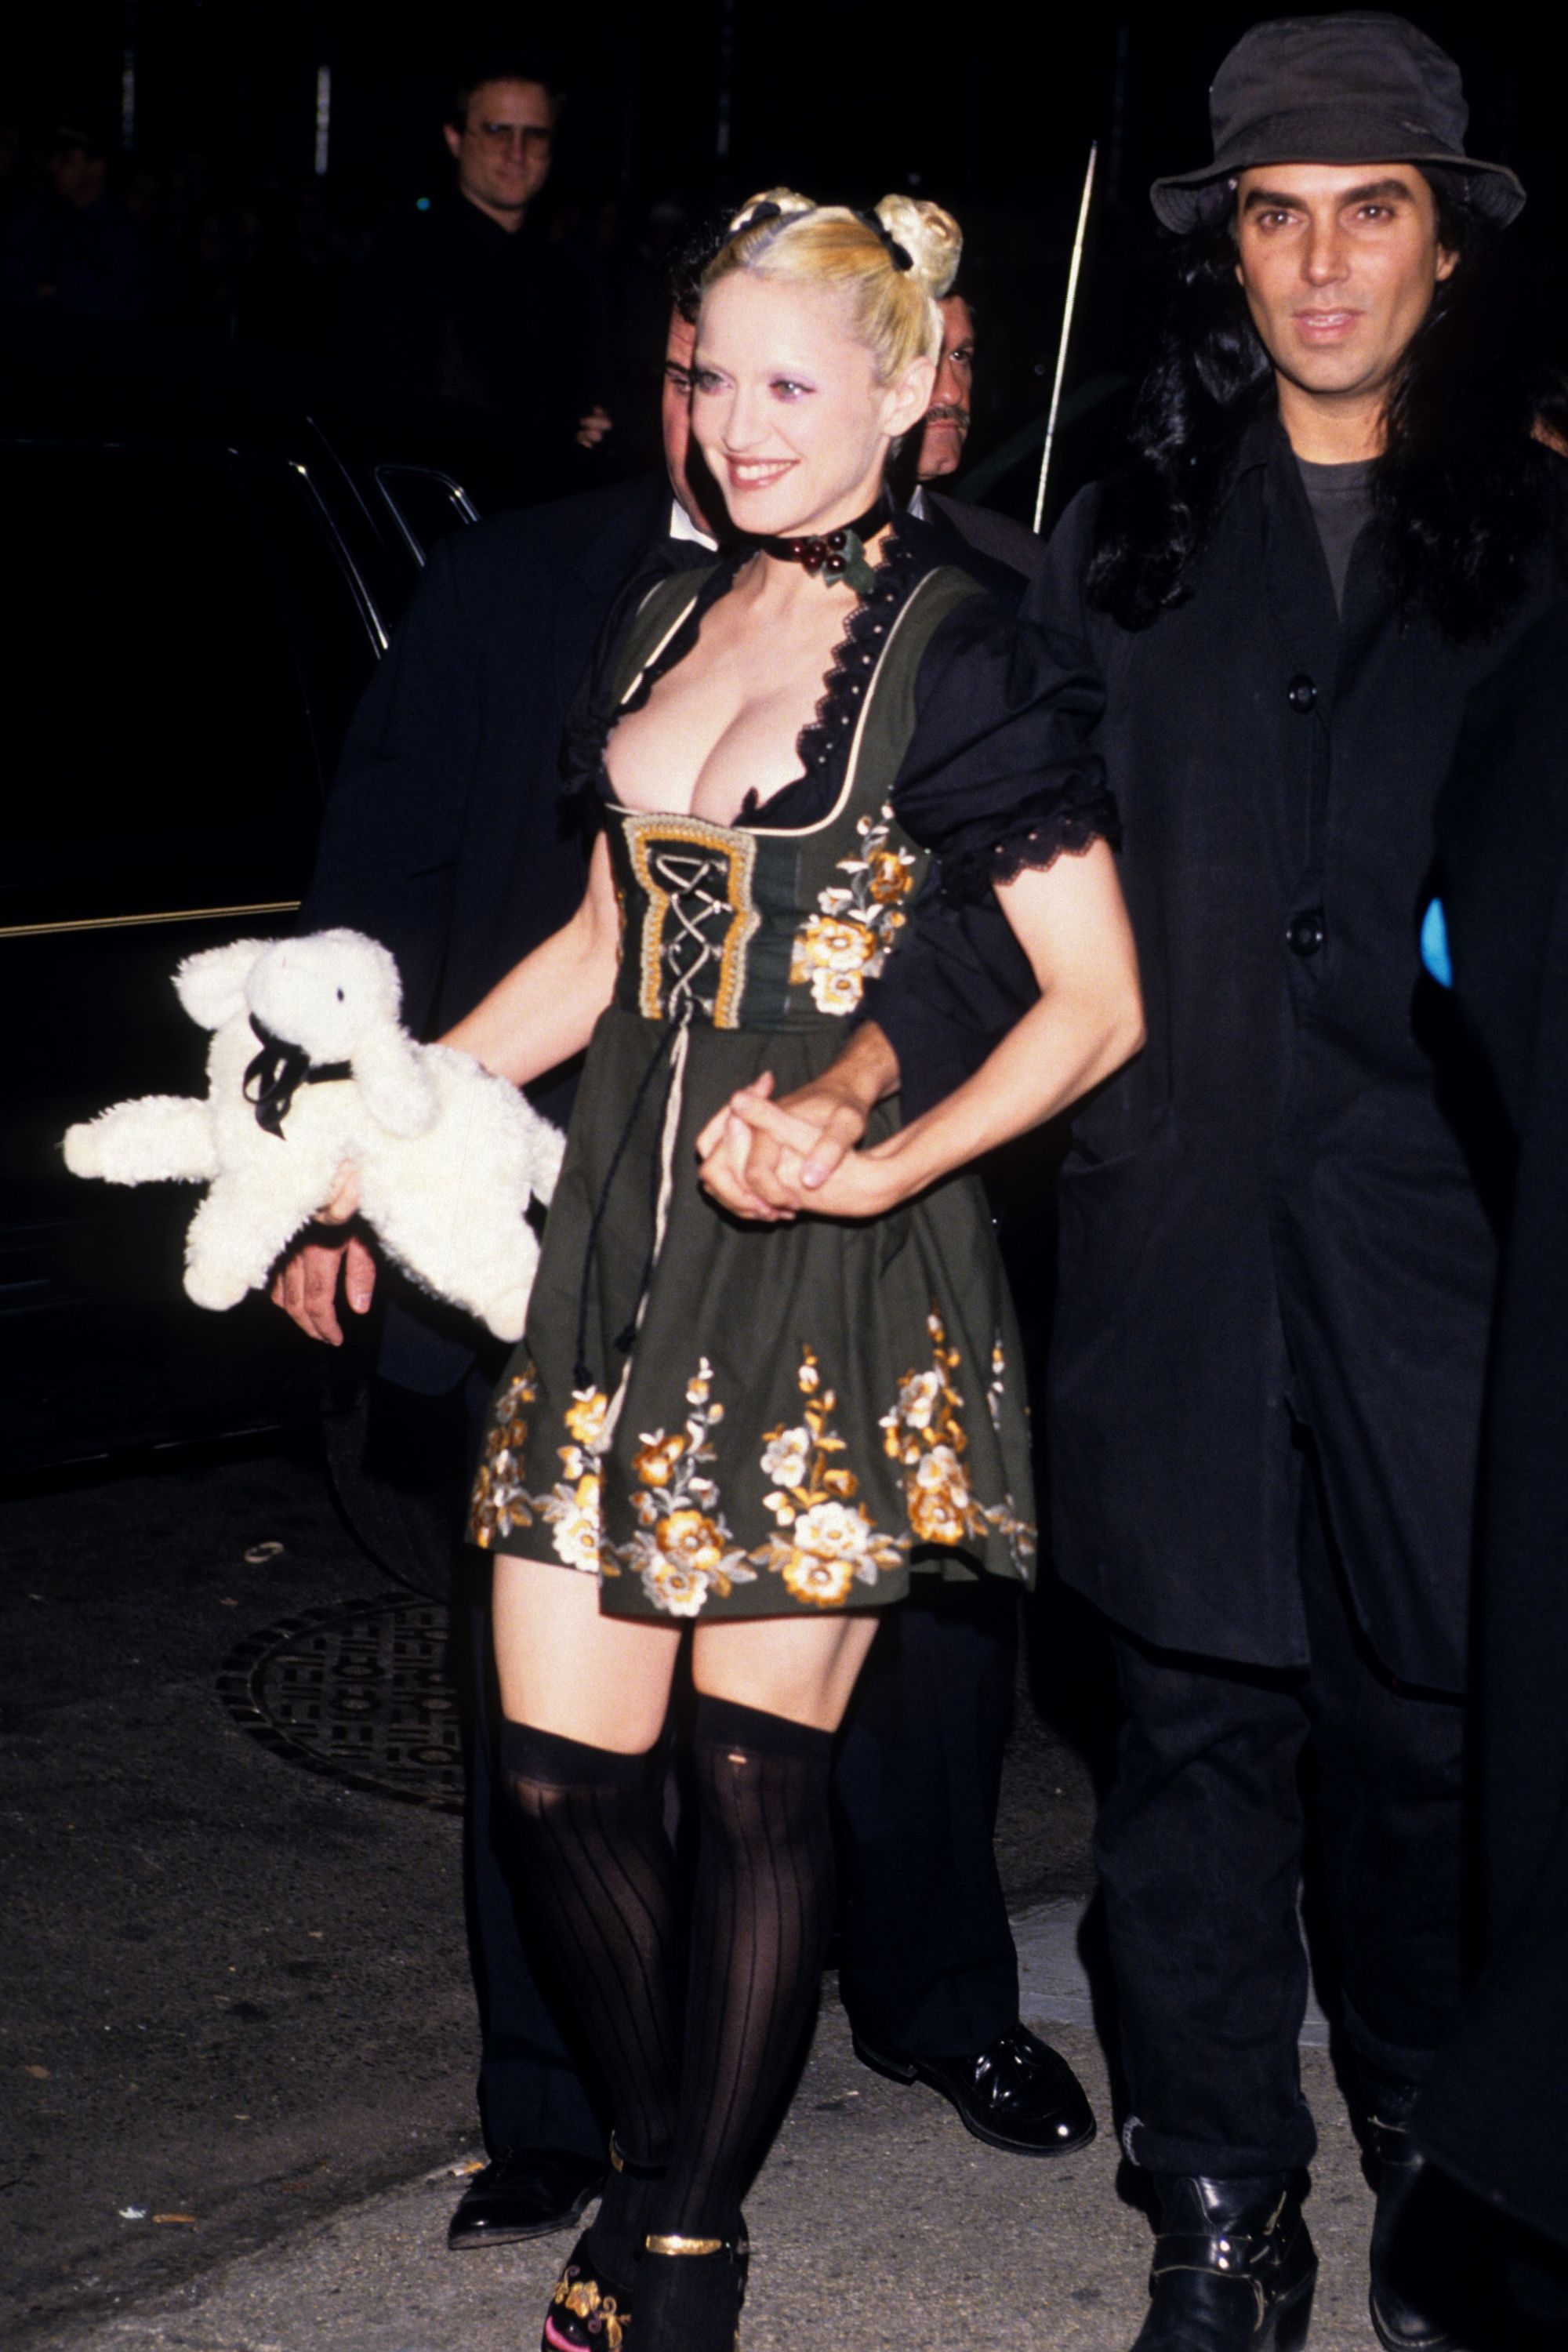 312d136ca7 Madonna's Most Shocking Looks Of All Time - Madonna's Craziest Outfits of  All Time